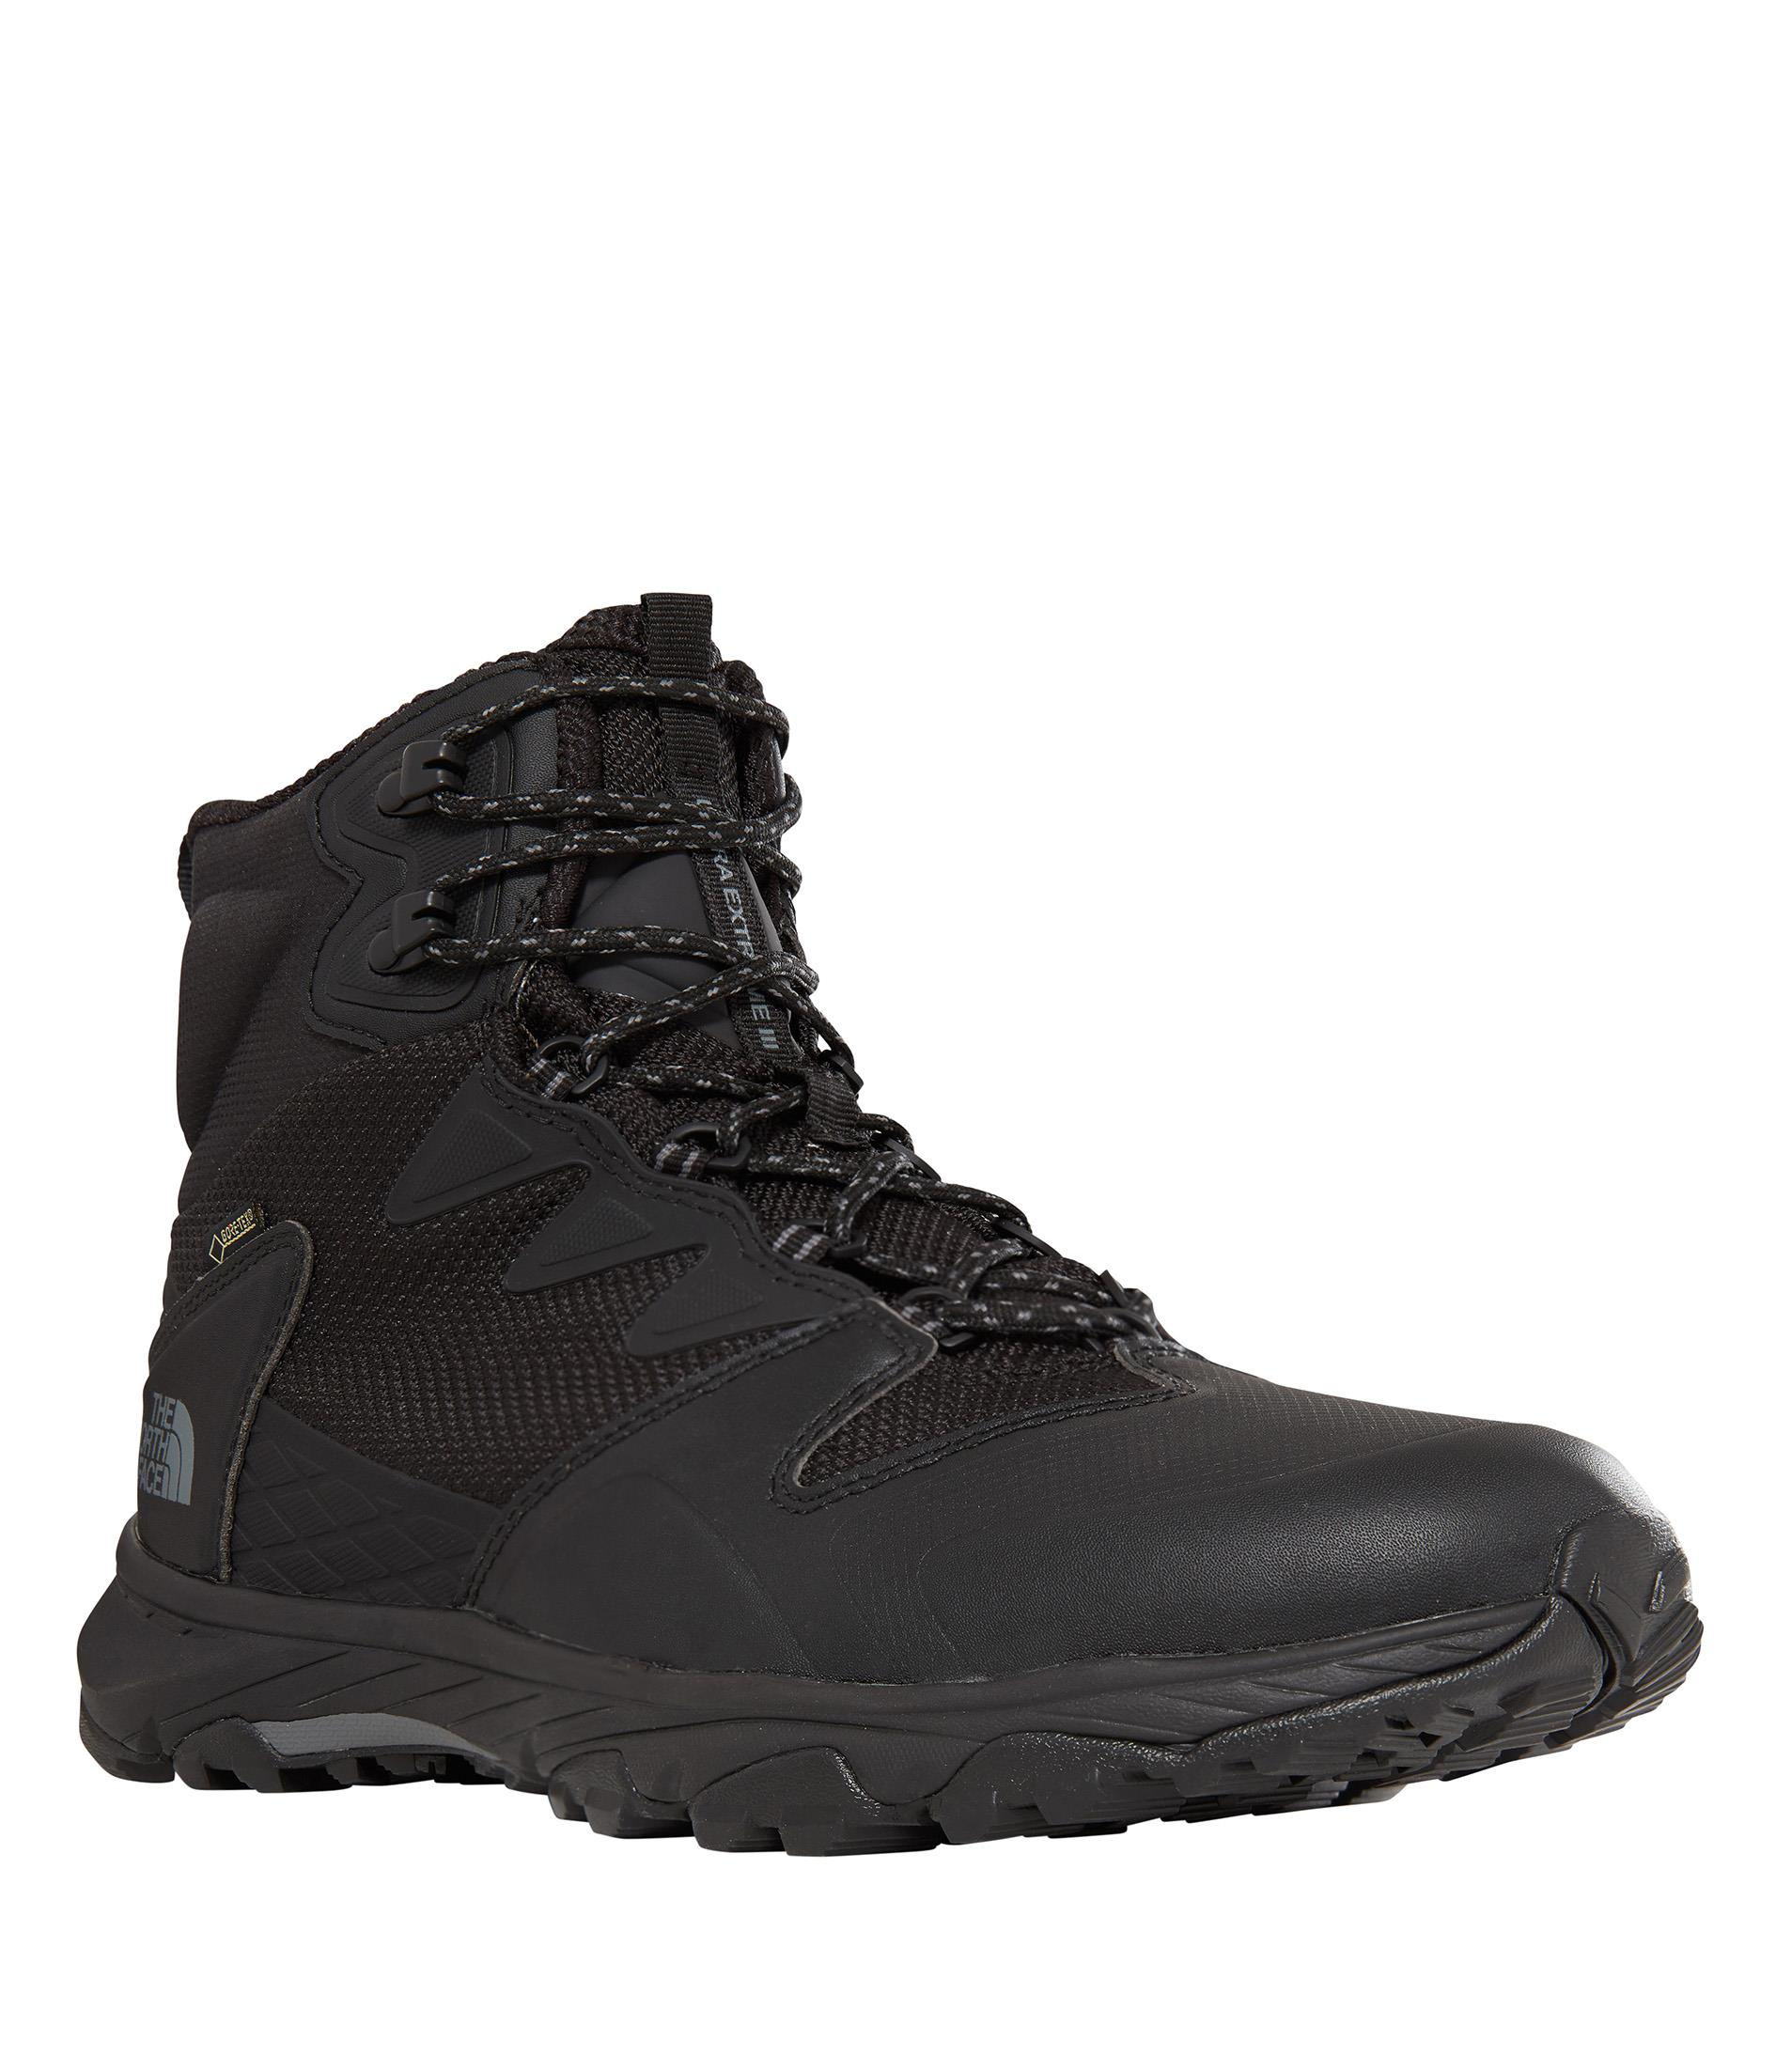 The North Face Ultra Xc Goretex  Nf0A3K3Mkx71 Bot